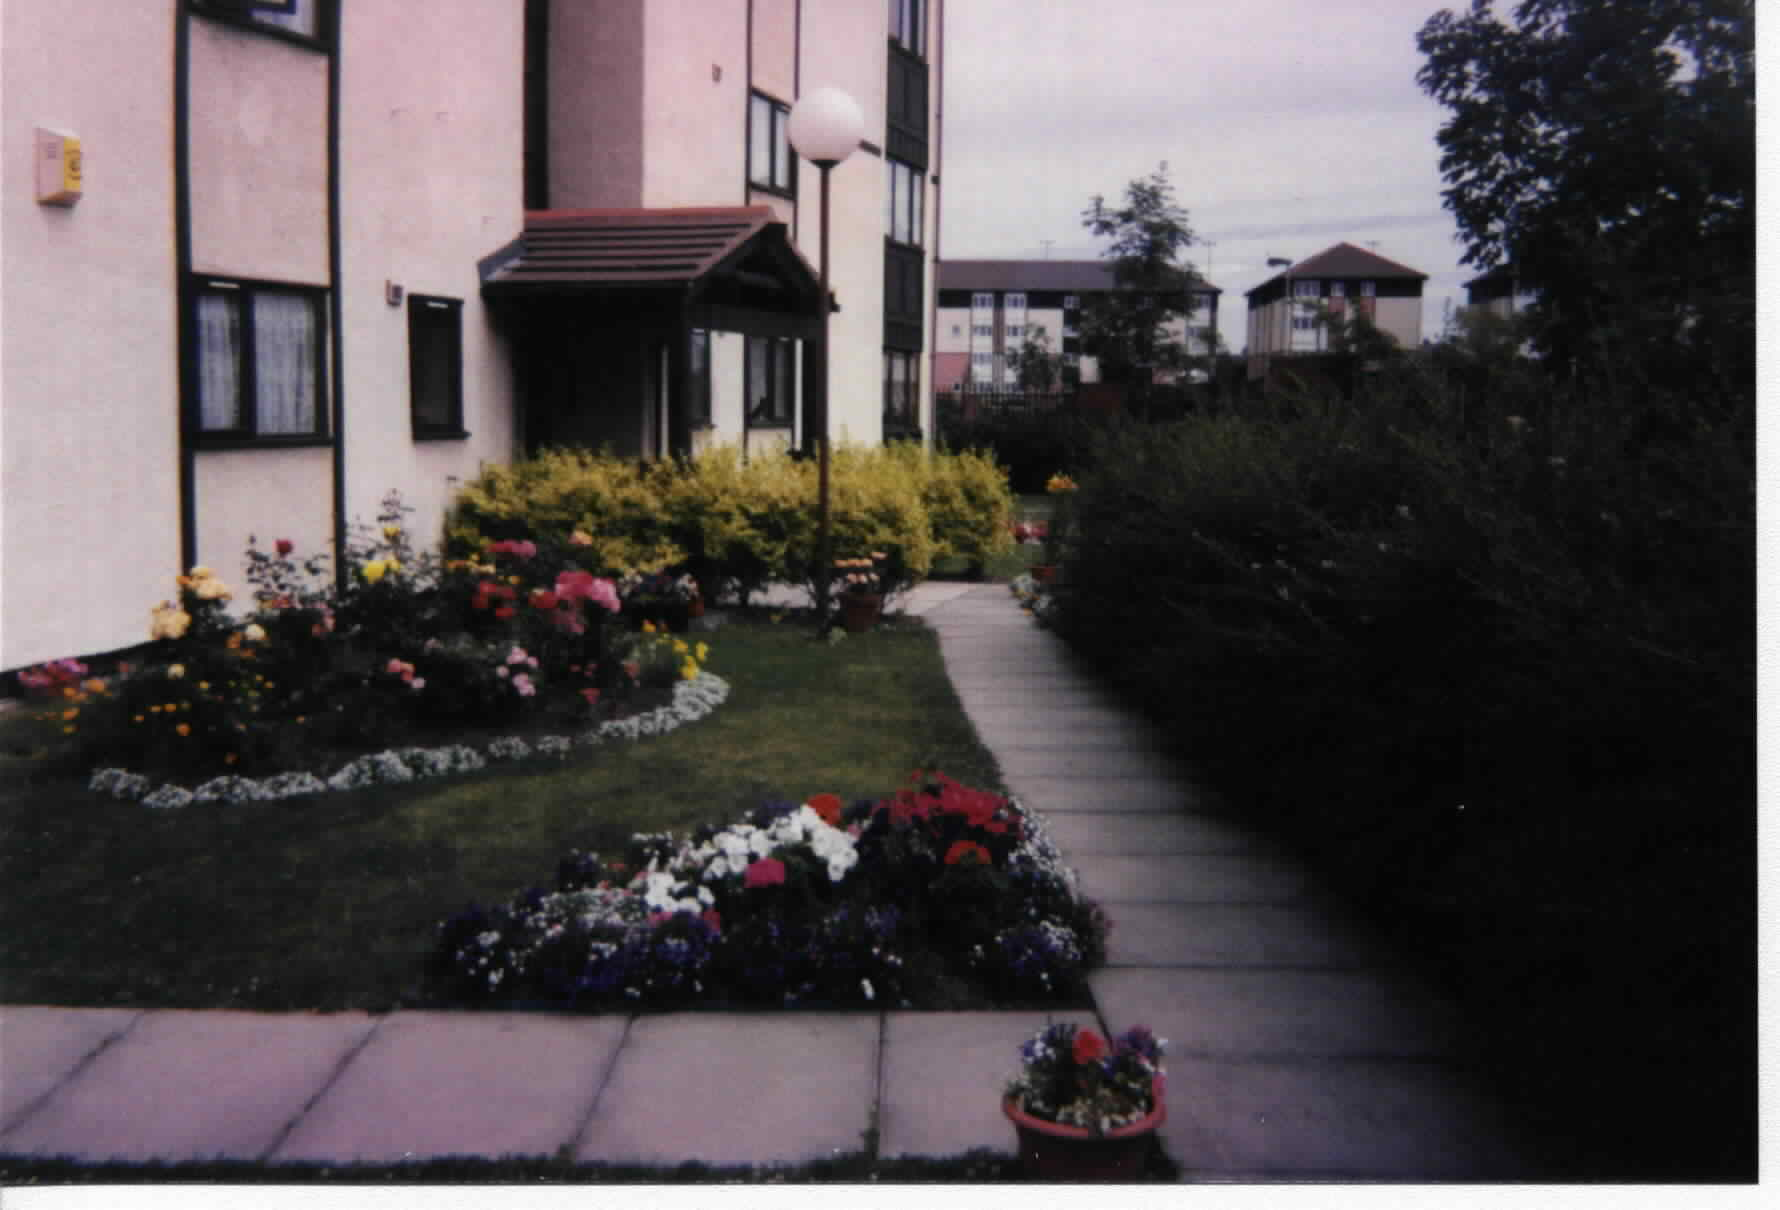 1997chollandlodge.jpg